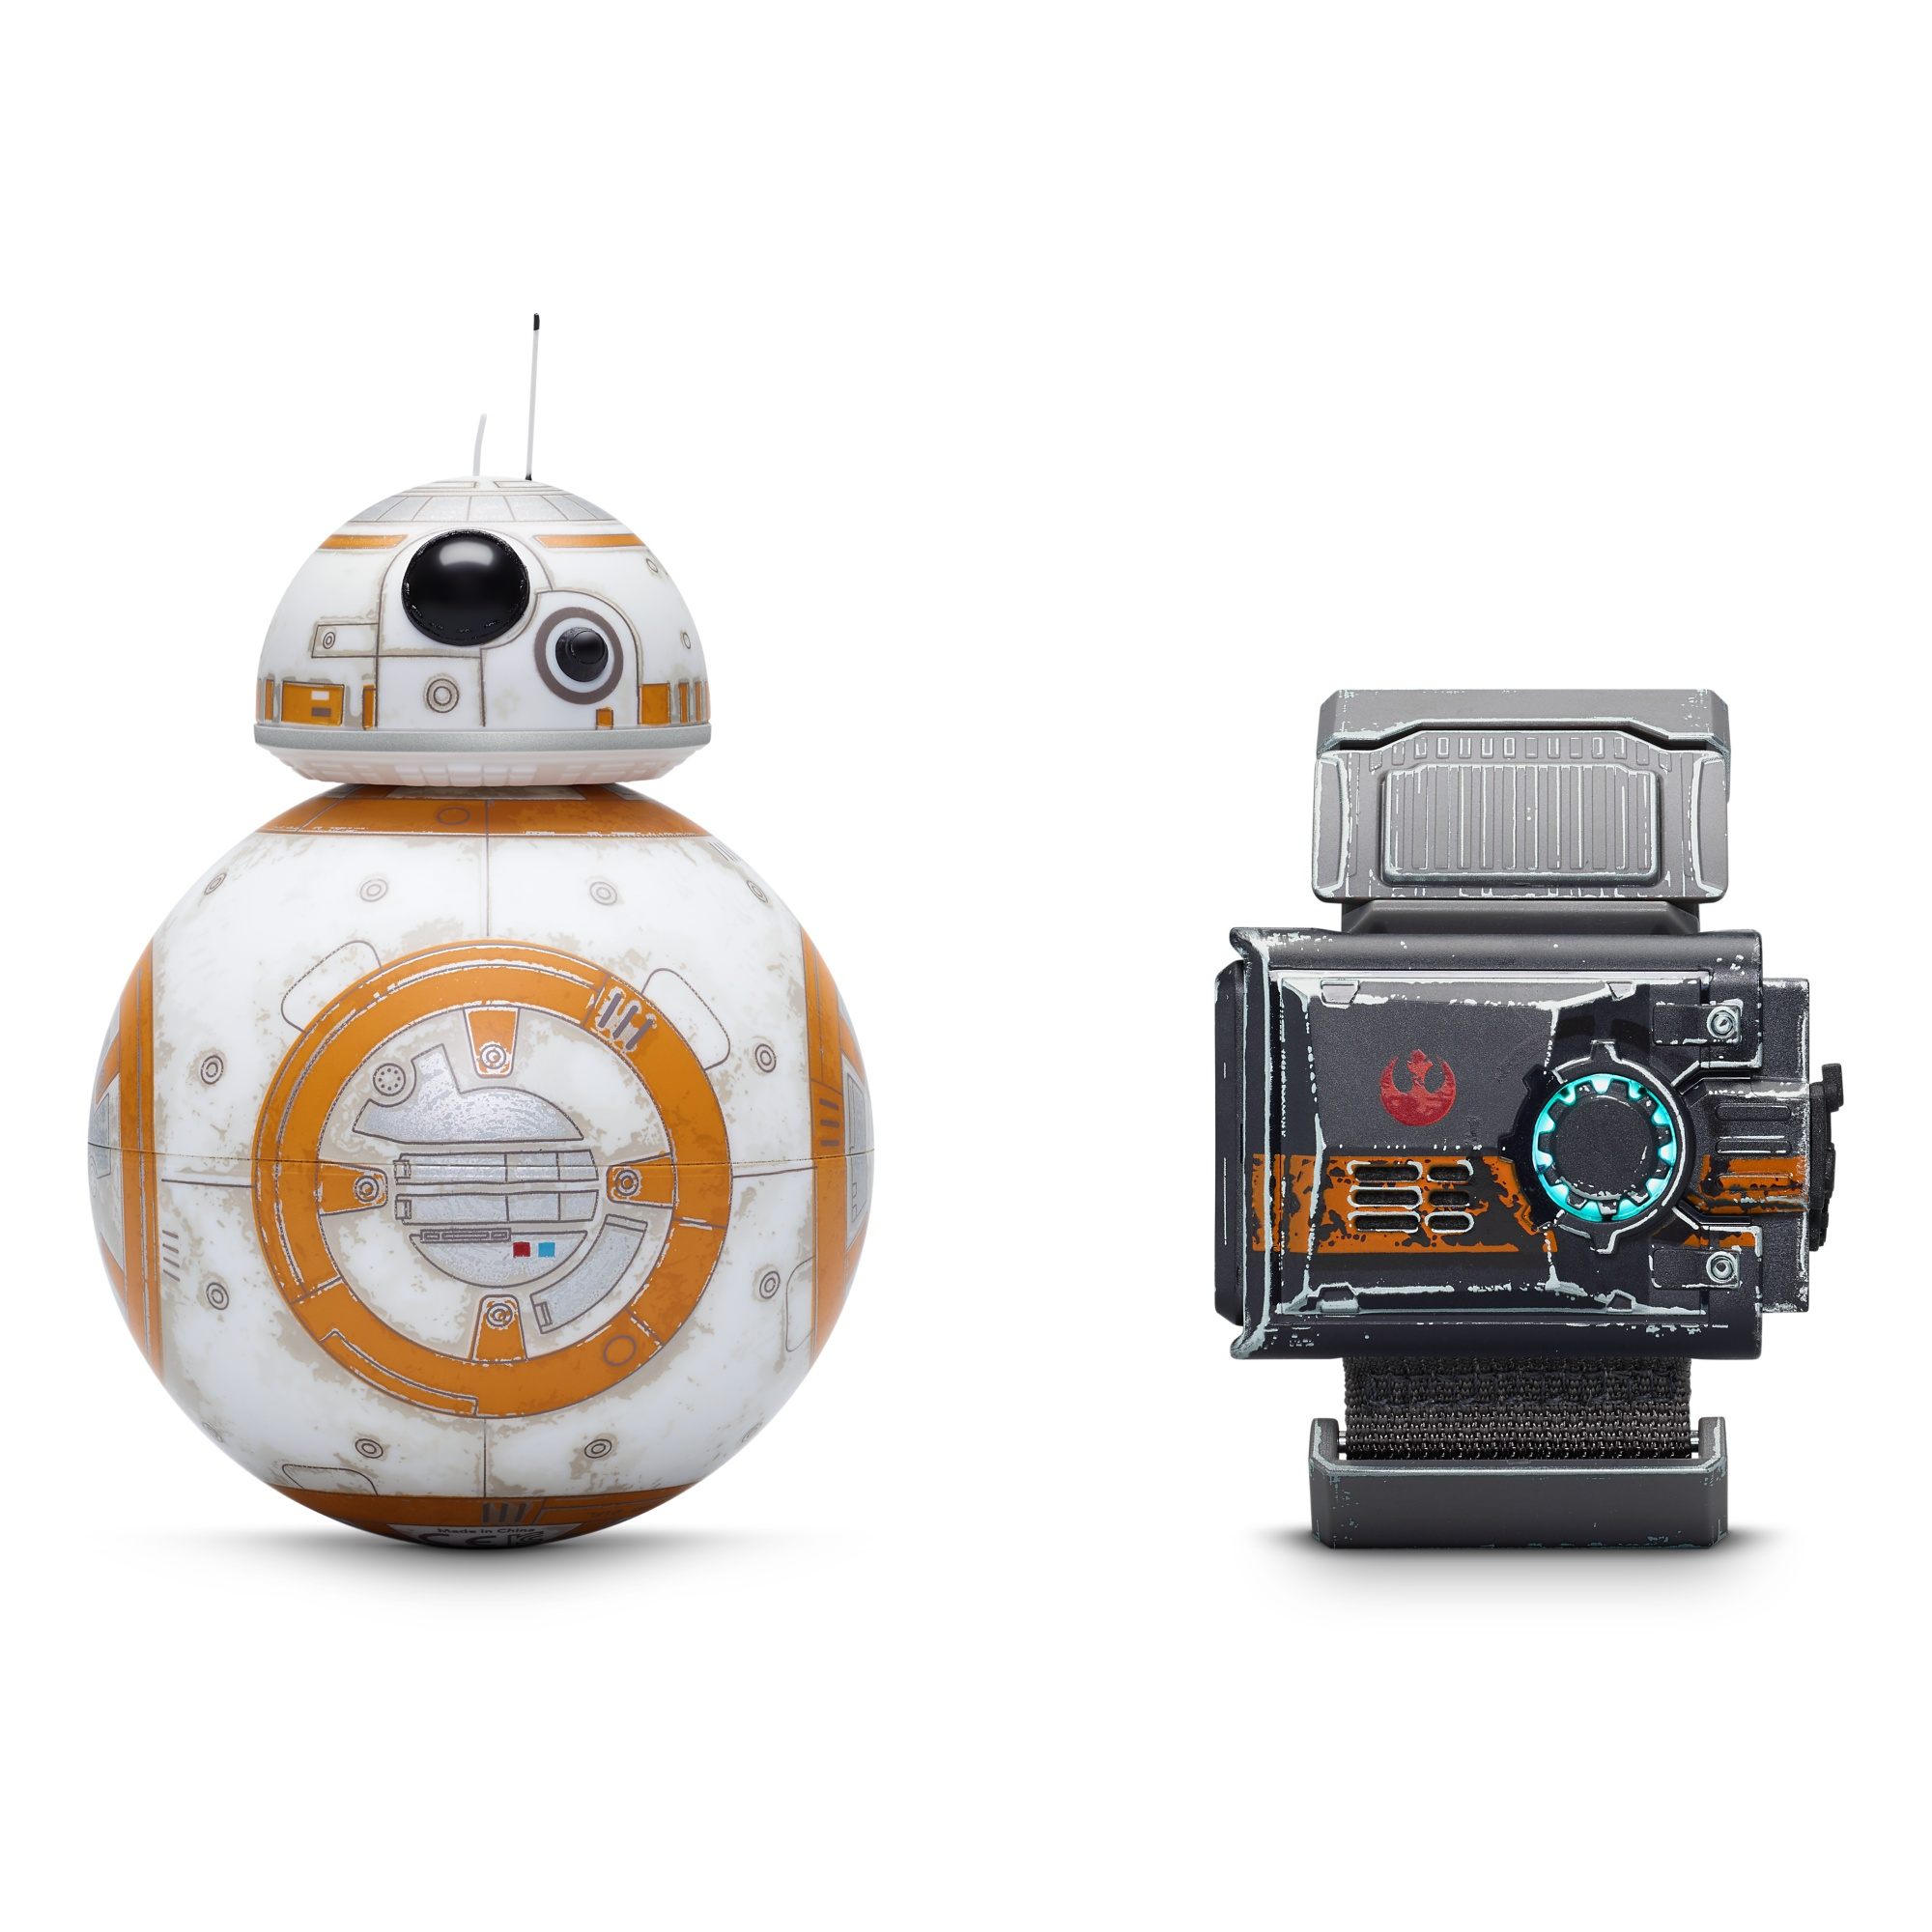 battle-worn-bb-8-droid-with-force-band